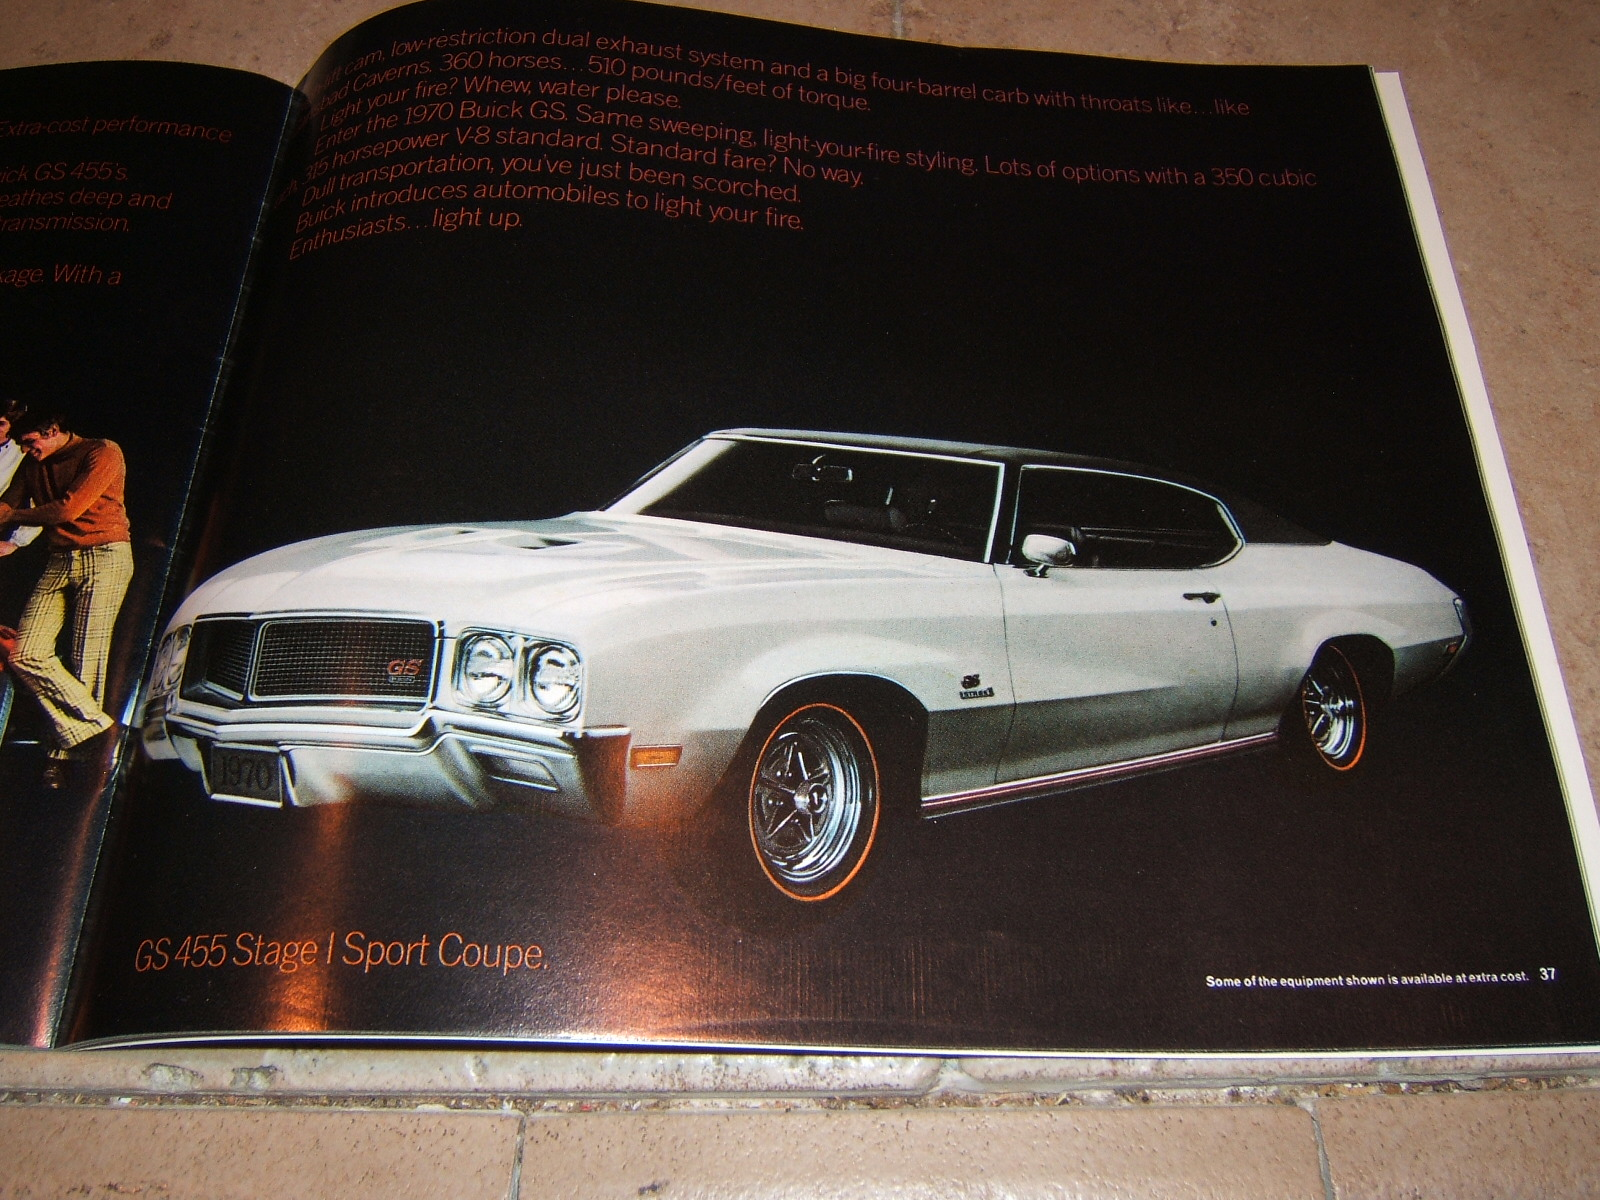 1970 Buick & GS sales book 60 page new (a 70 buick)